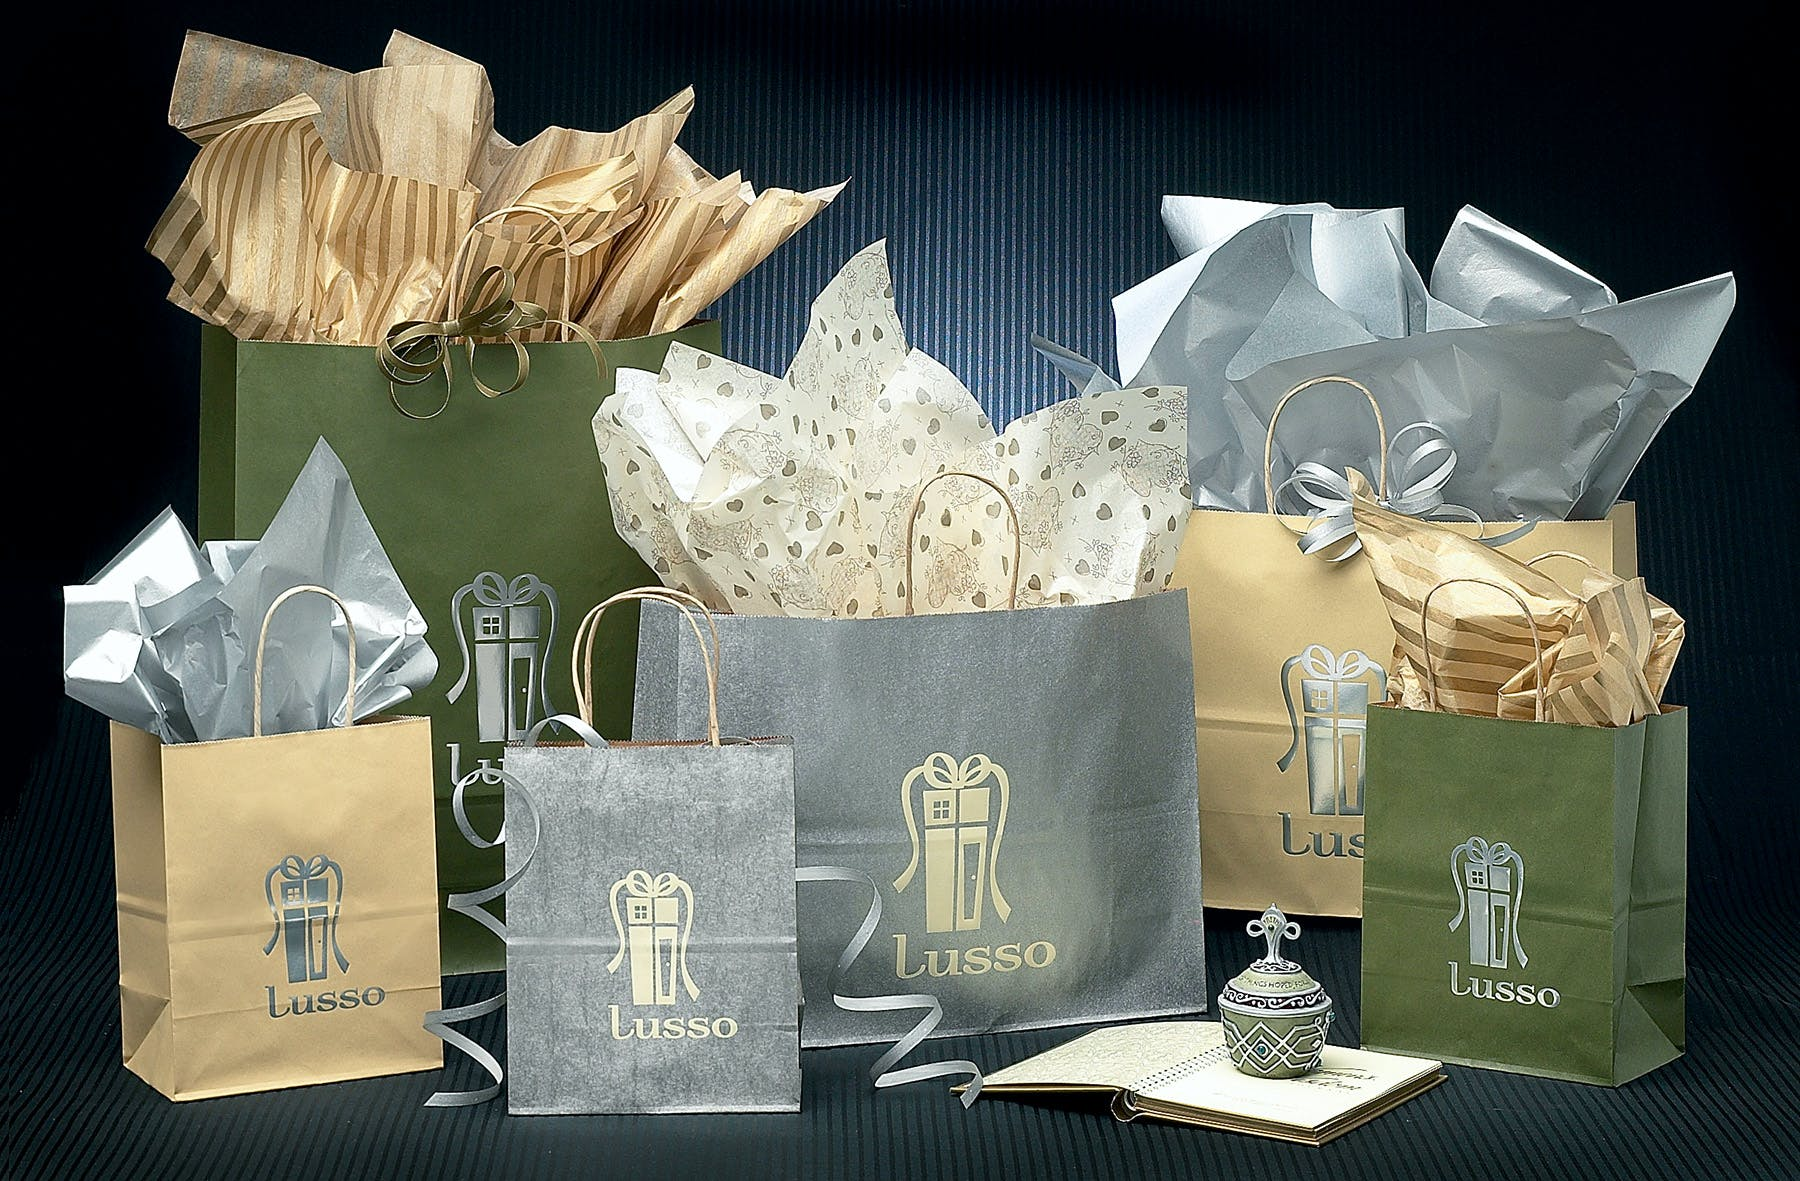 Metallic Tint Shopping Bags - Paper Shopping Bags - sold by Howard Packaging